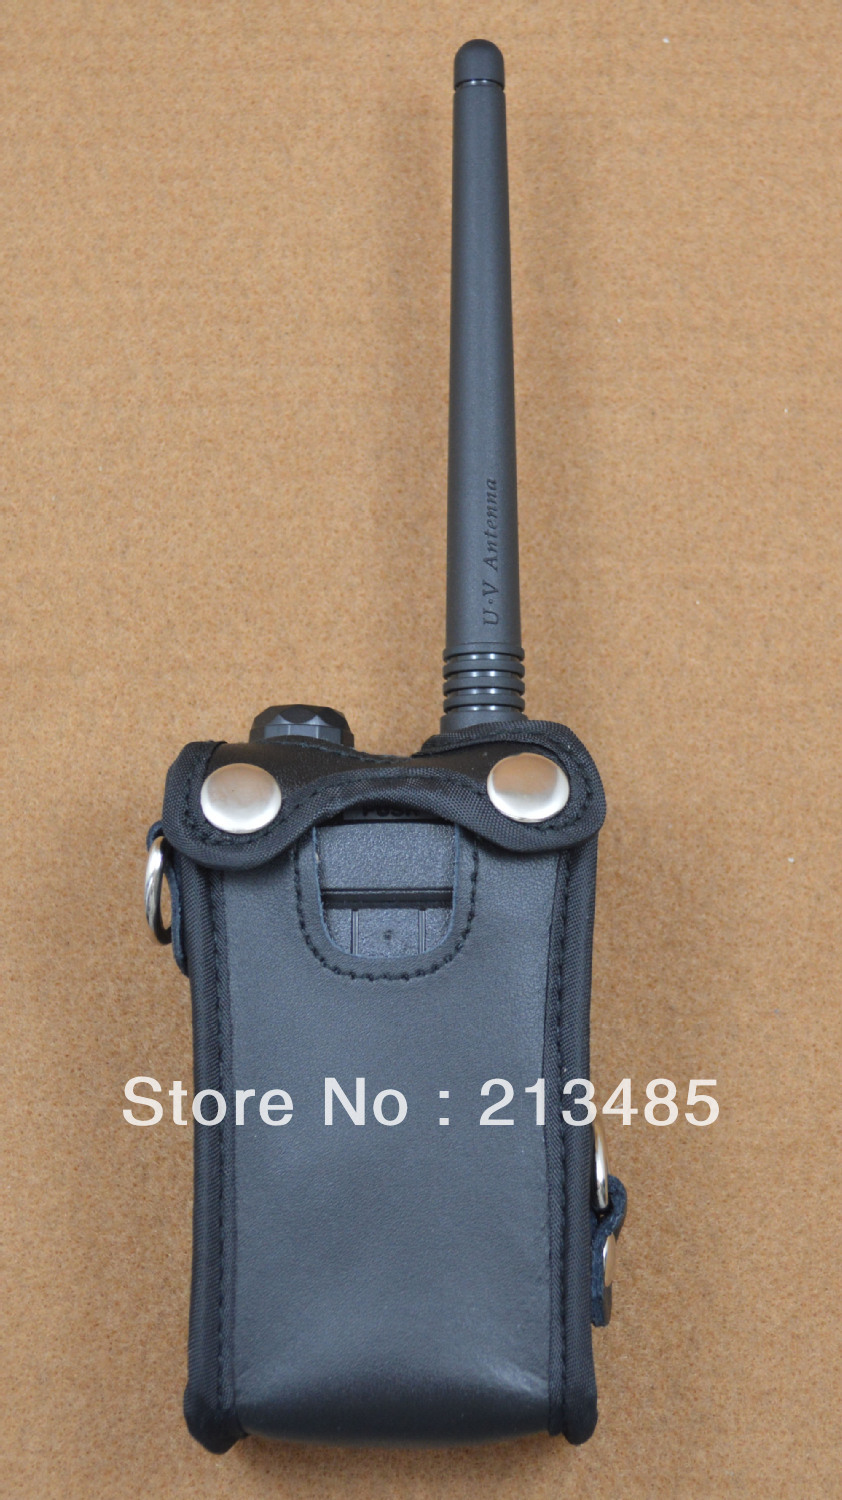 Leather Case for Baofeng UV-5R,TYT TH-F8 Good Quality Brand New 100%